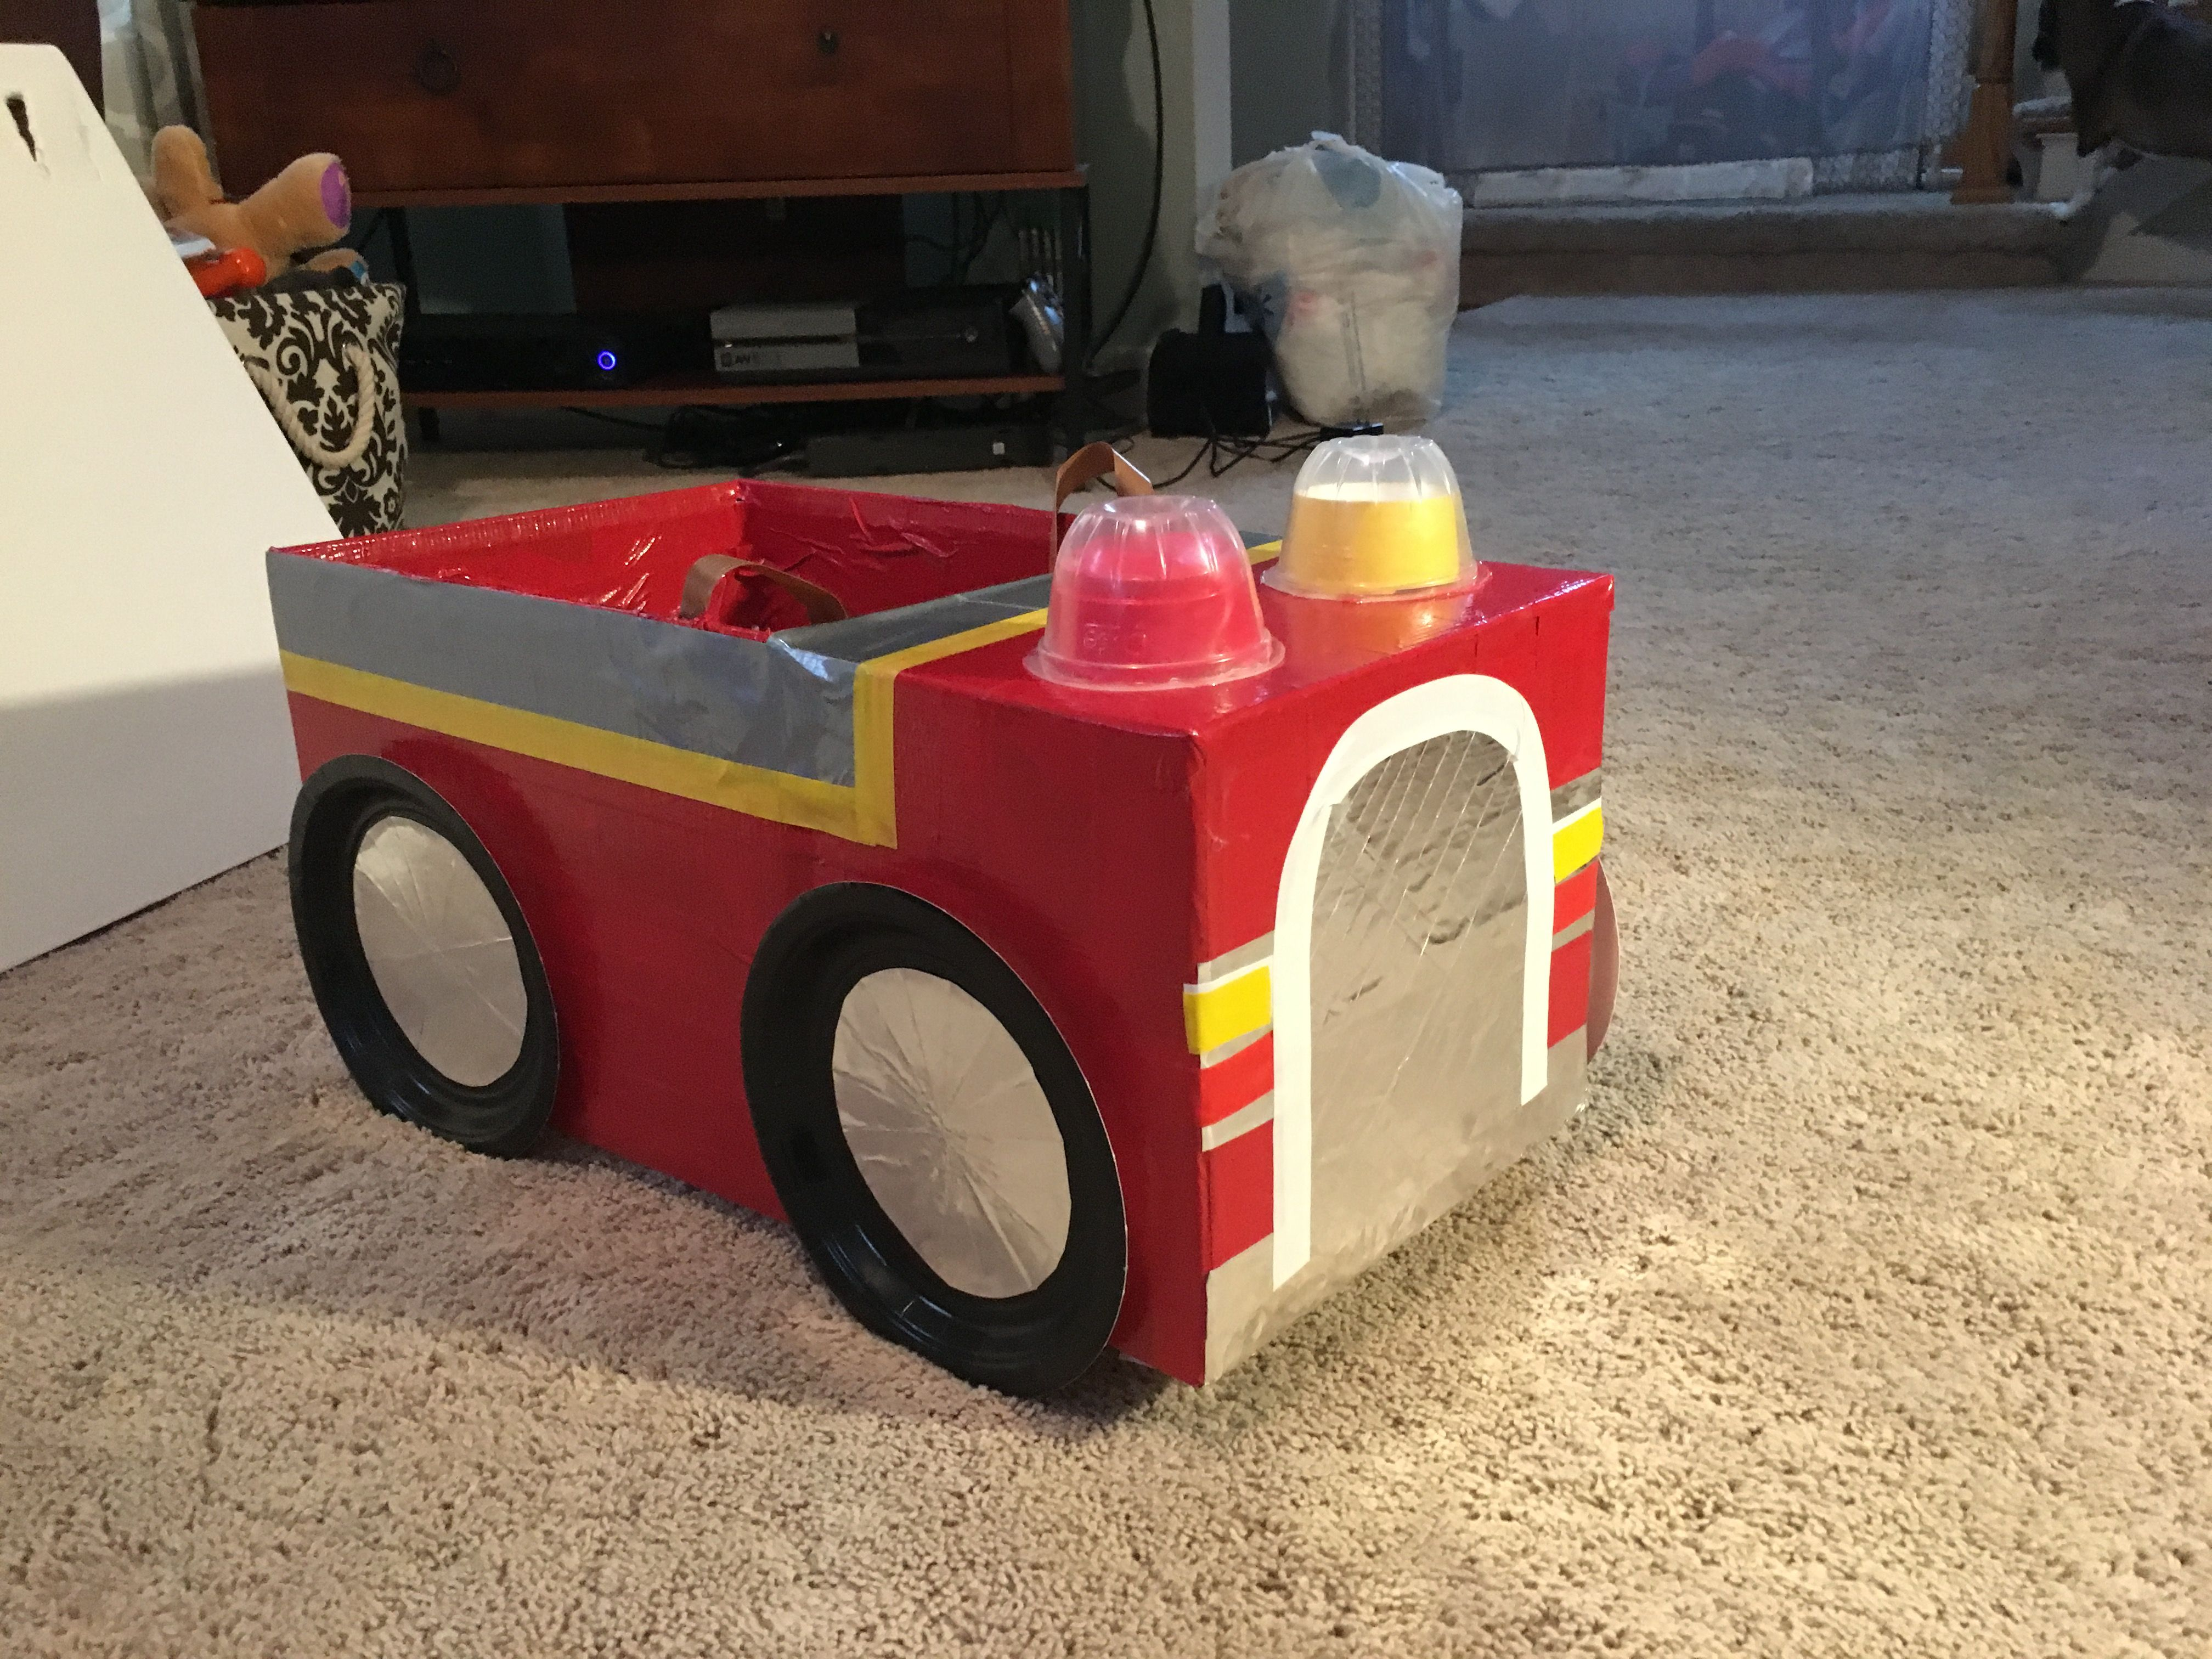 Marshall's fire truck costume! Made out of a diaper box and